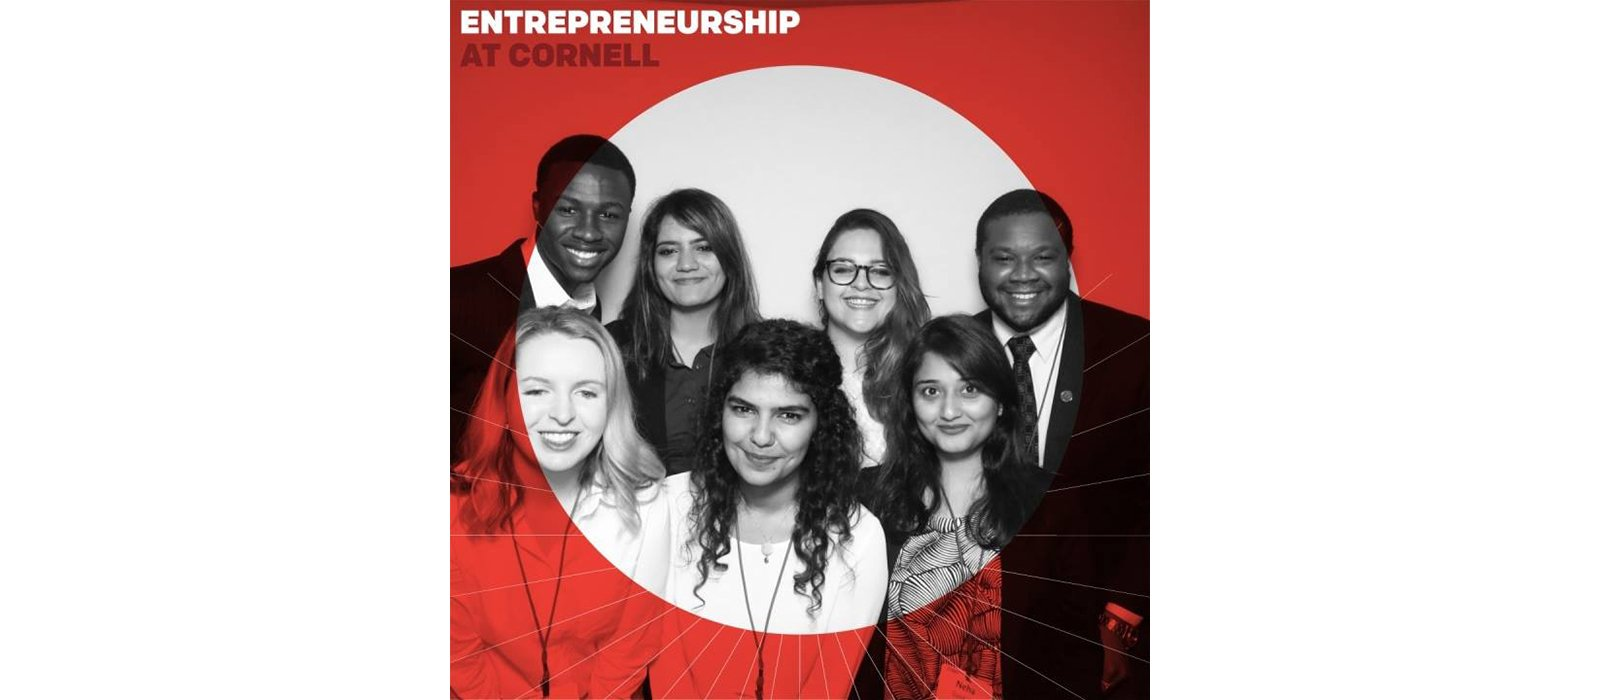 CIPA's entrepreneurship students